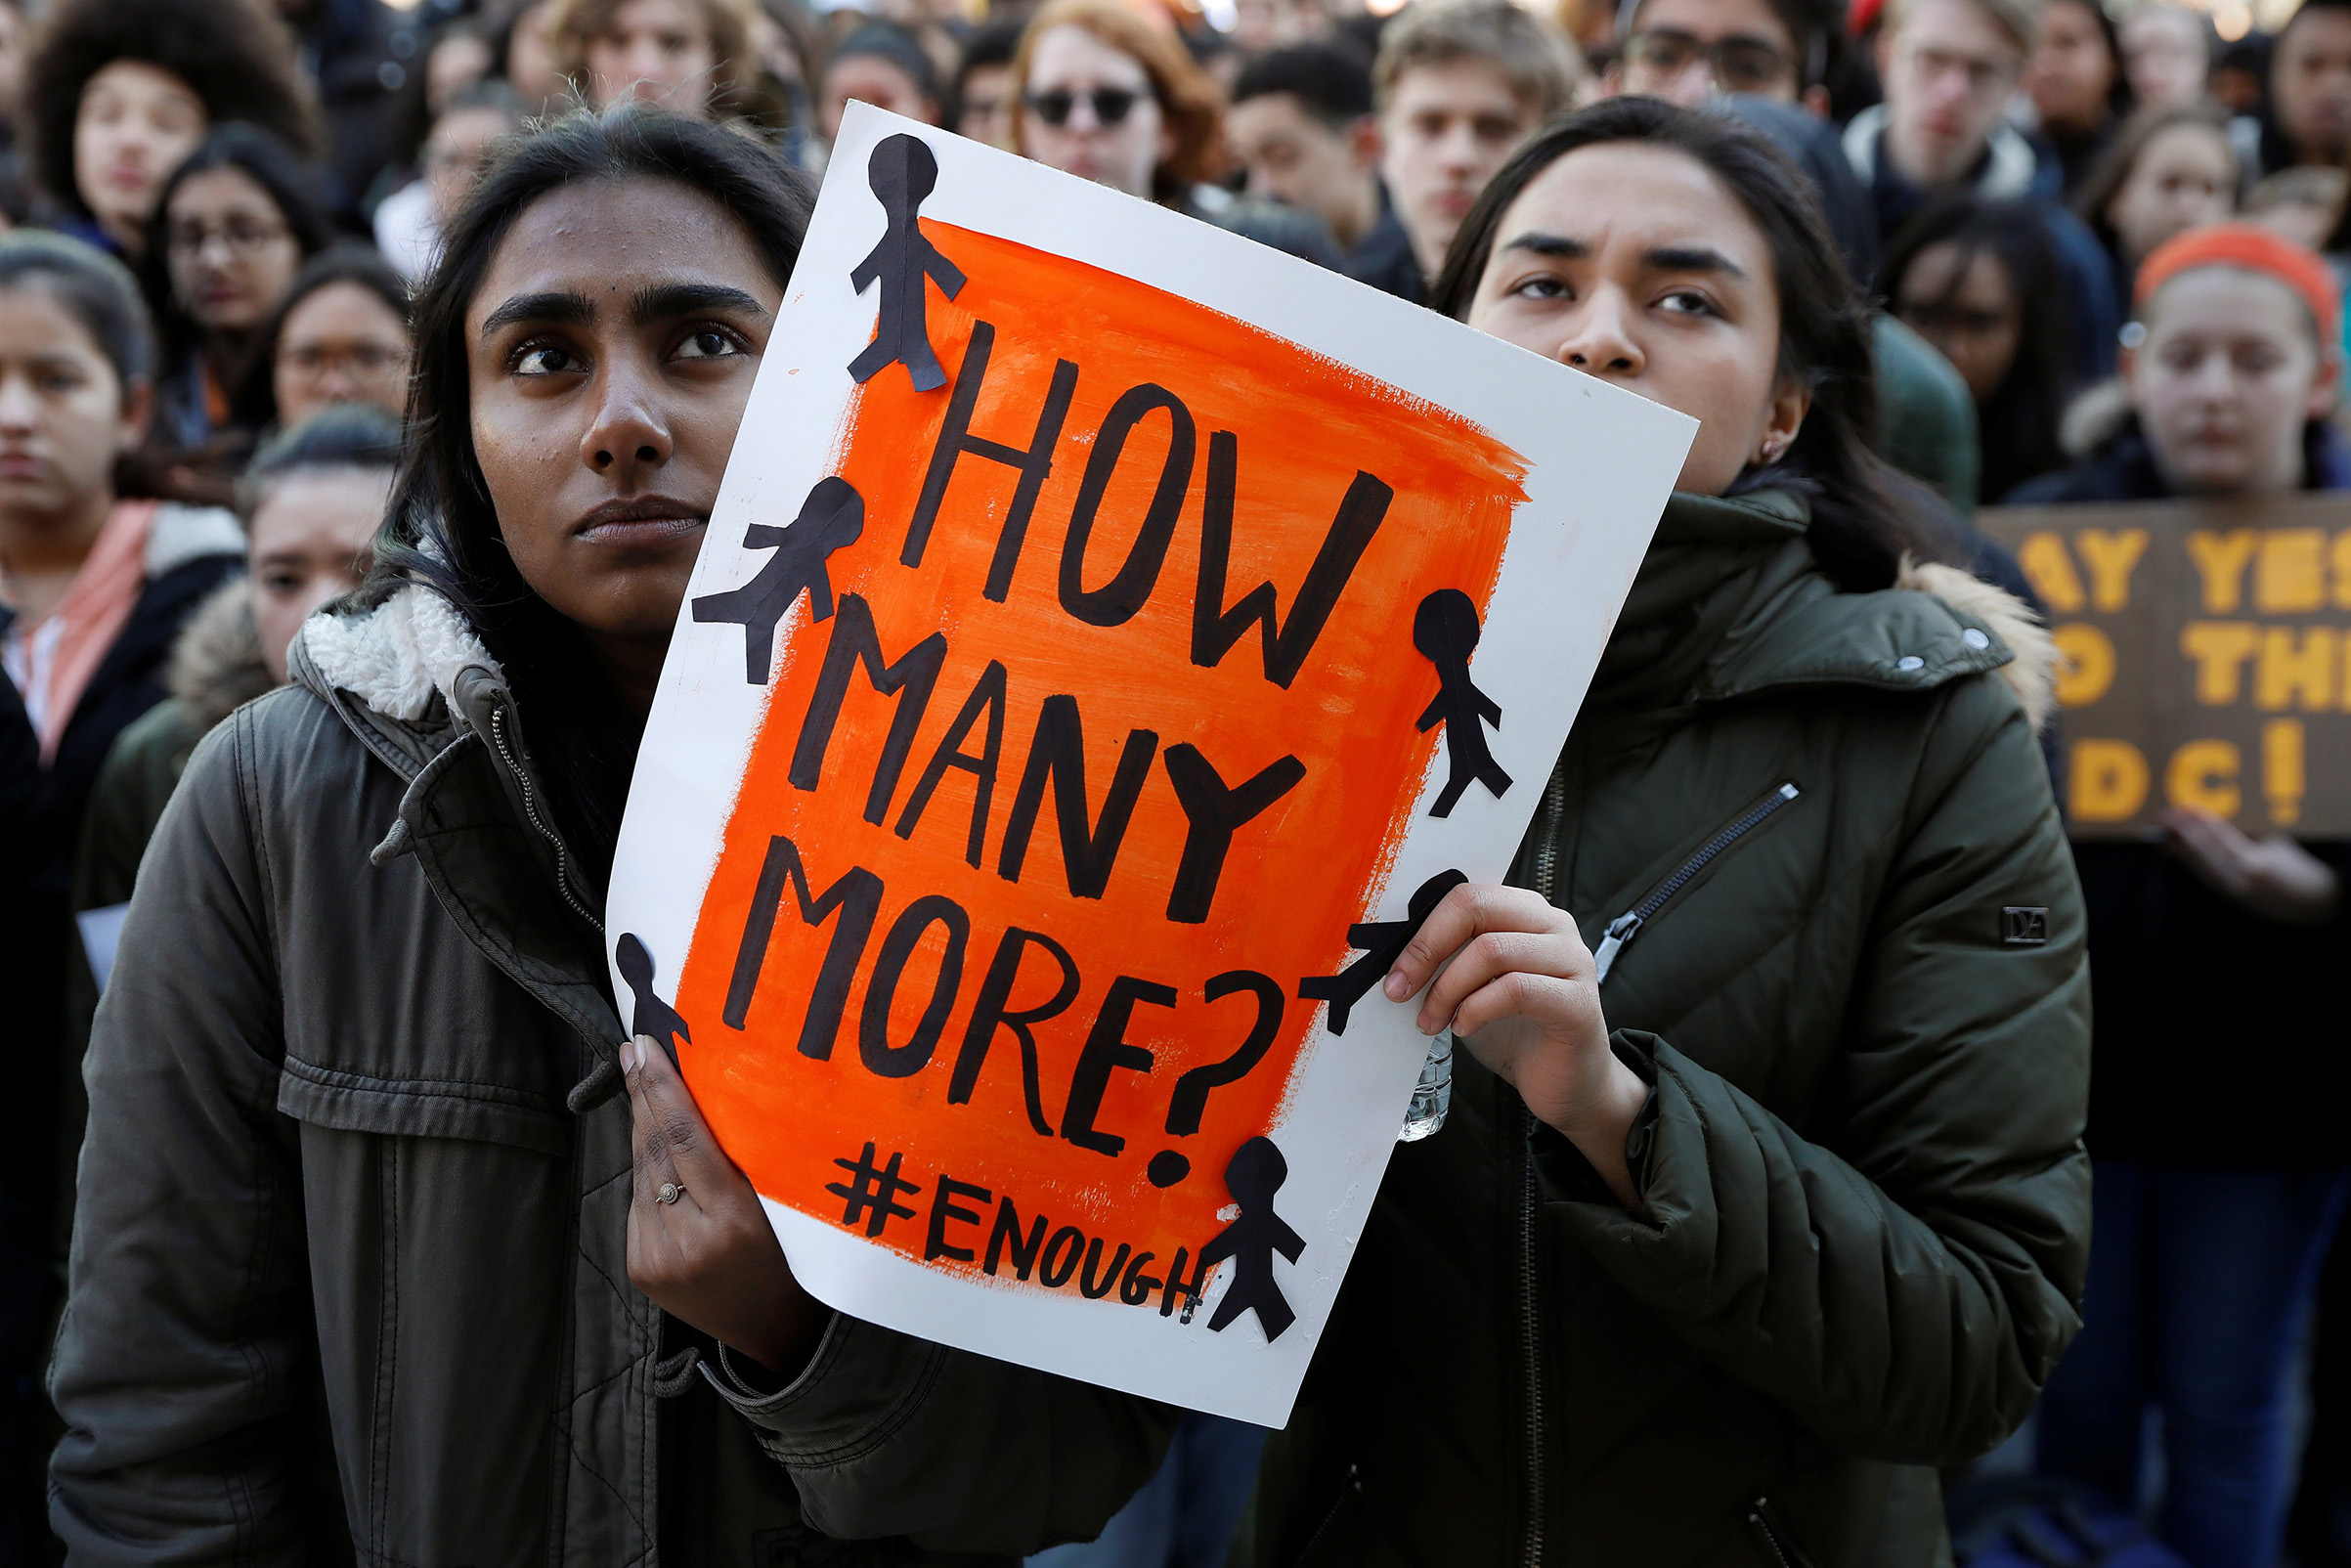 Students participate in a march in support of the National School Walkout in the Queens borough of New York City, on March 14, 2018.